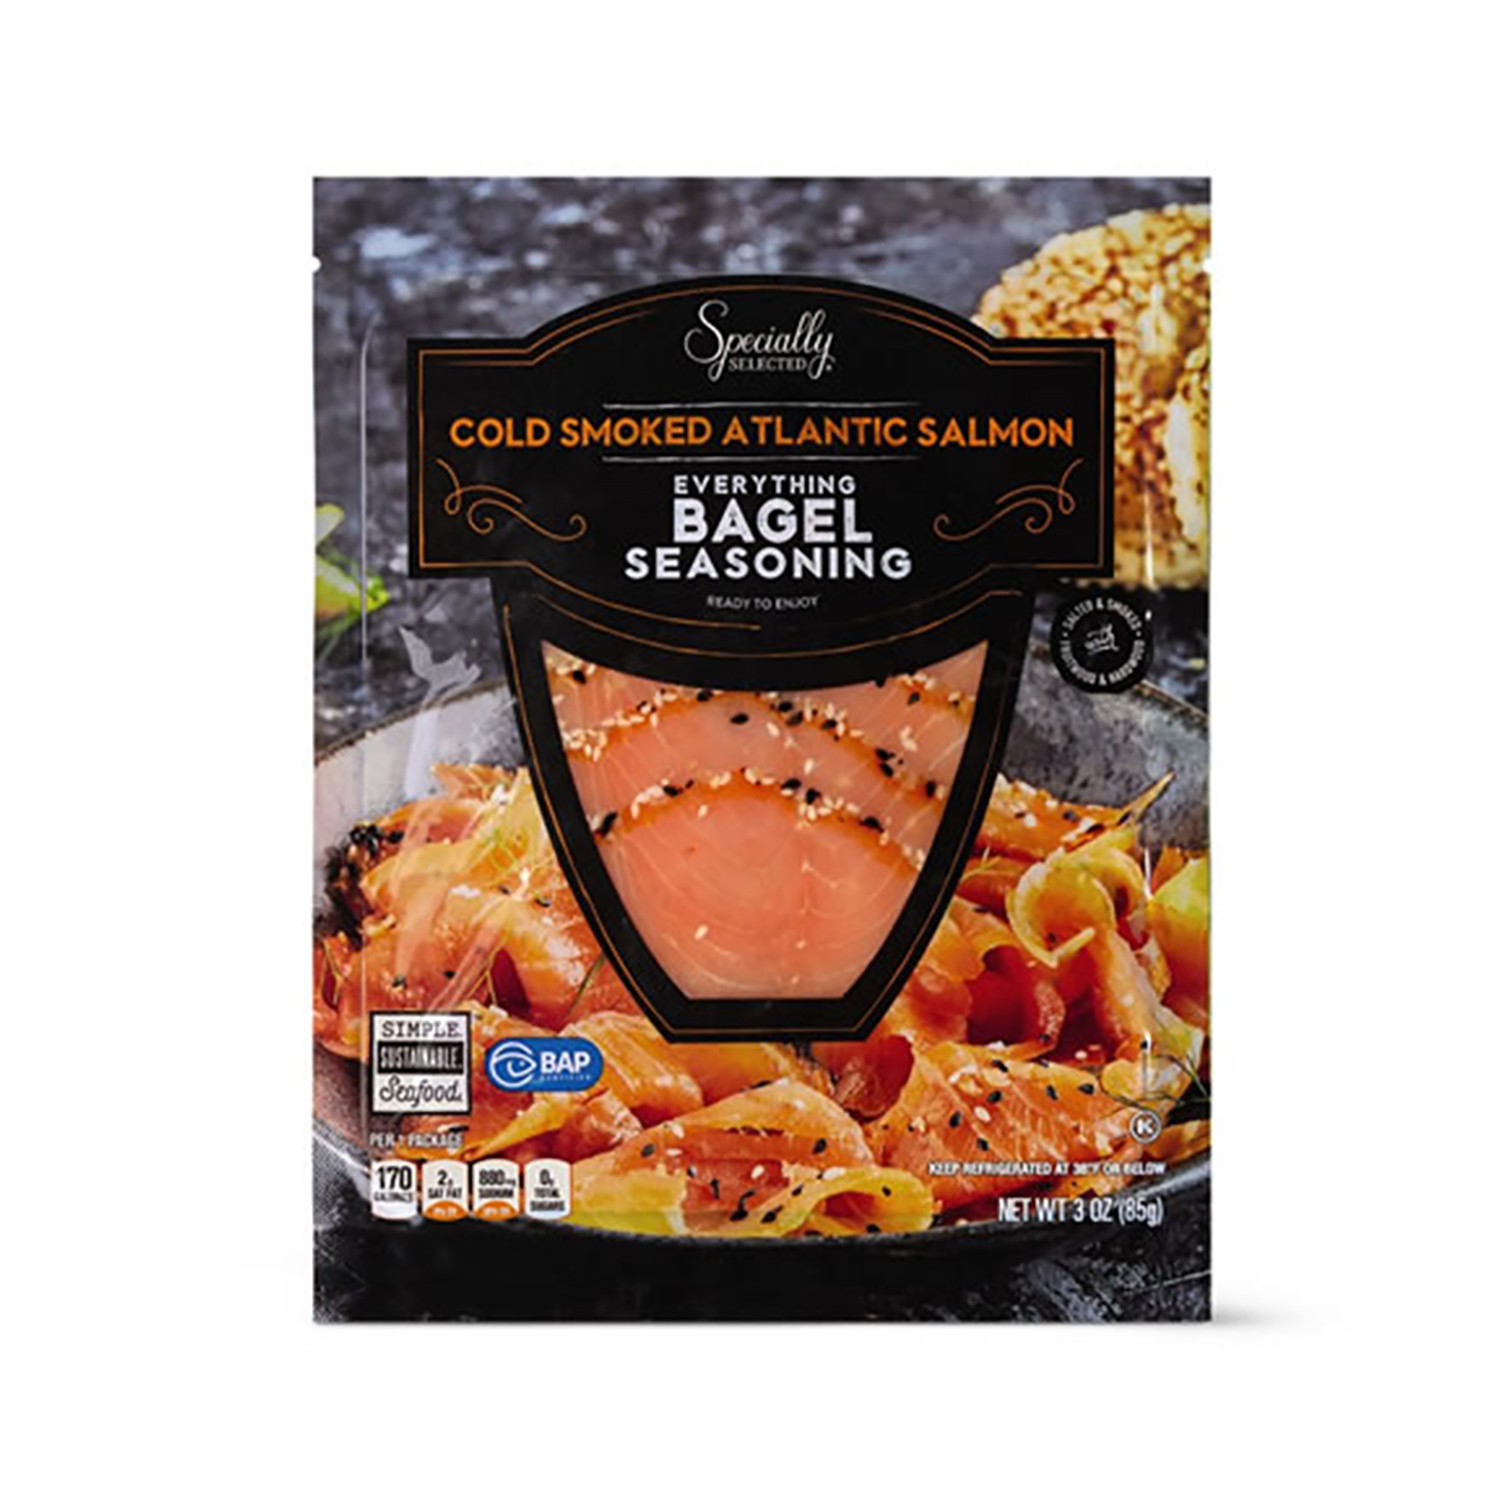 Specially Selected Everything Bagel Cold Smoked Salmon